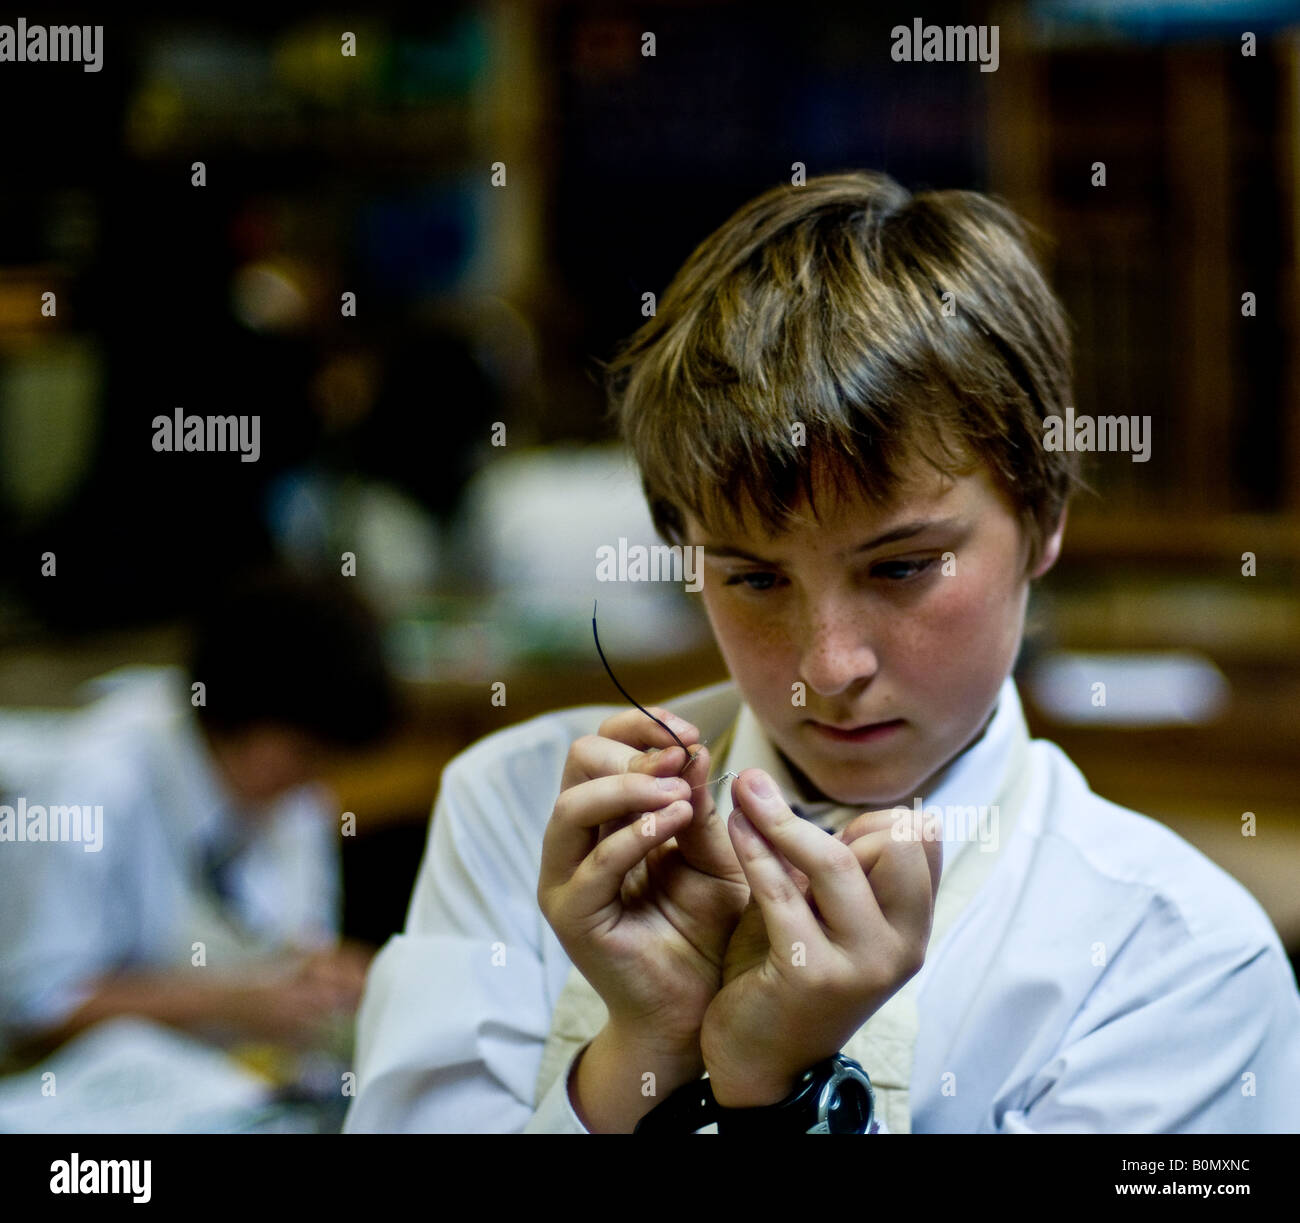 Education - A student working in an electronics class. - Stock Image